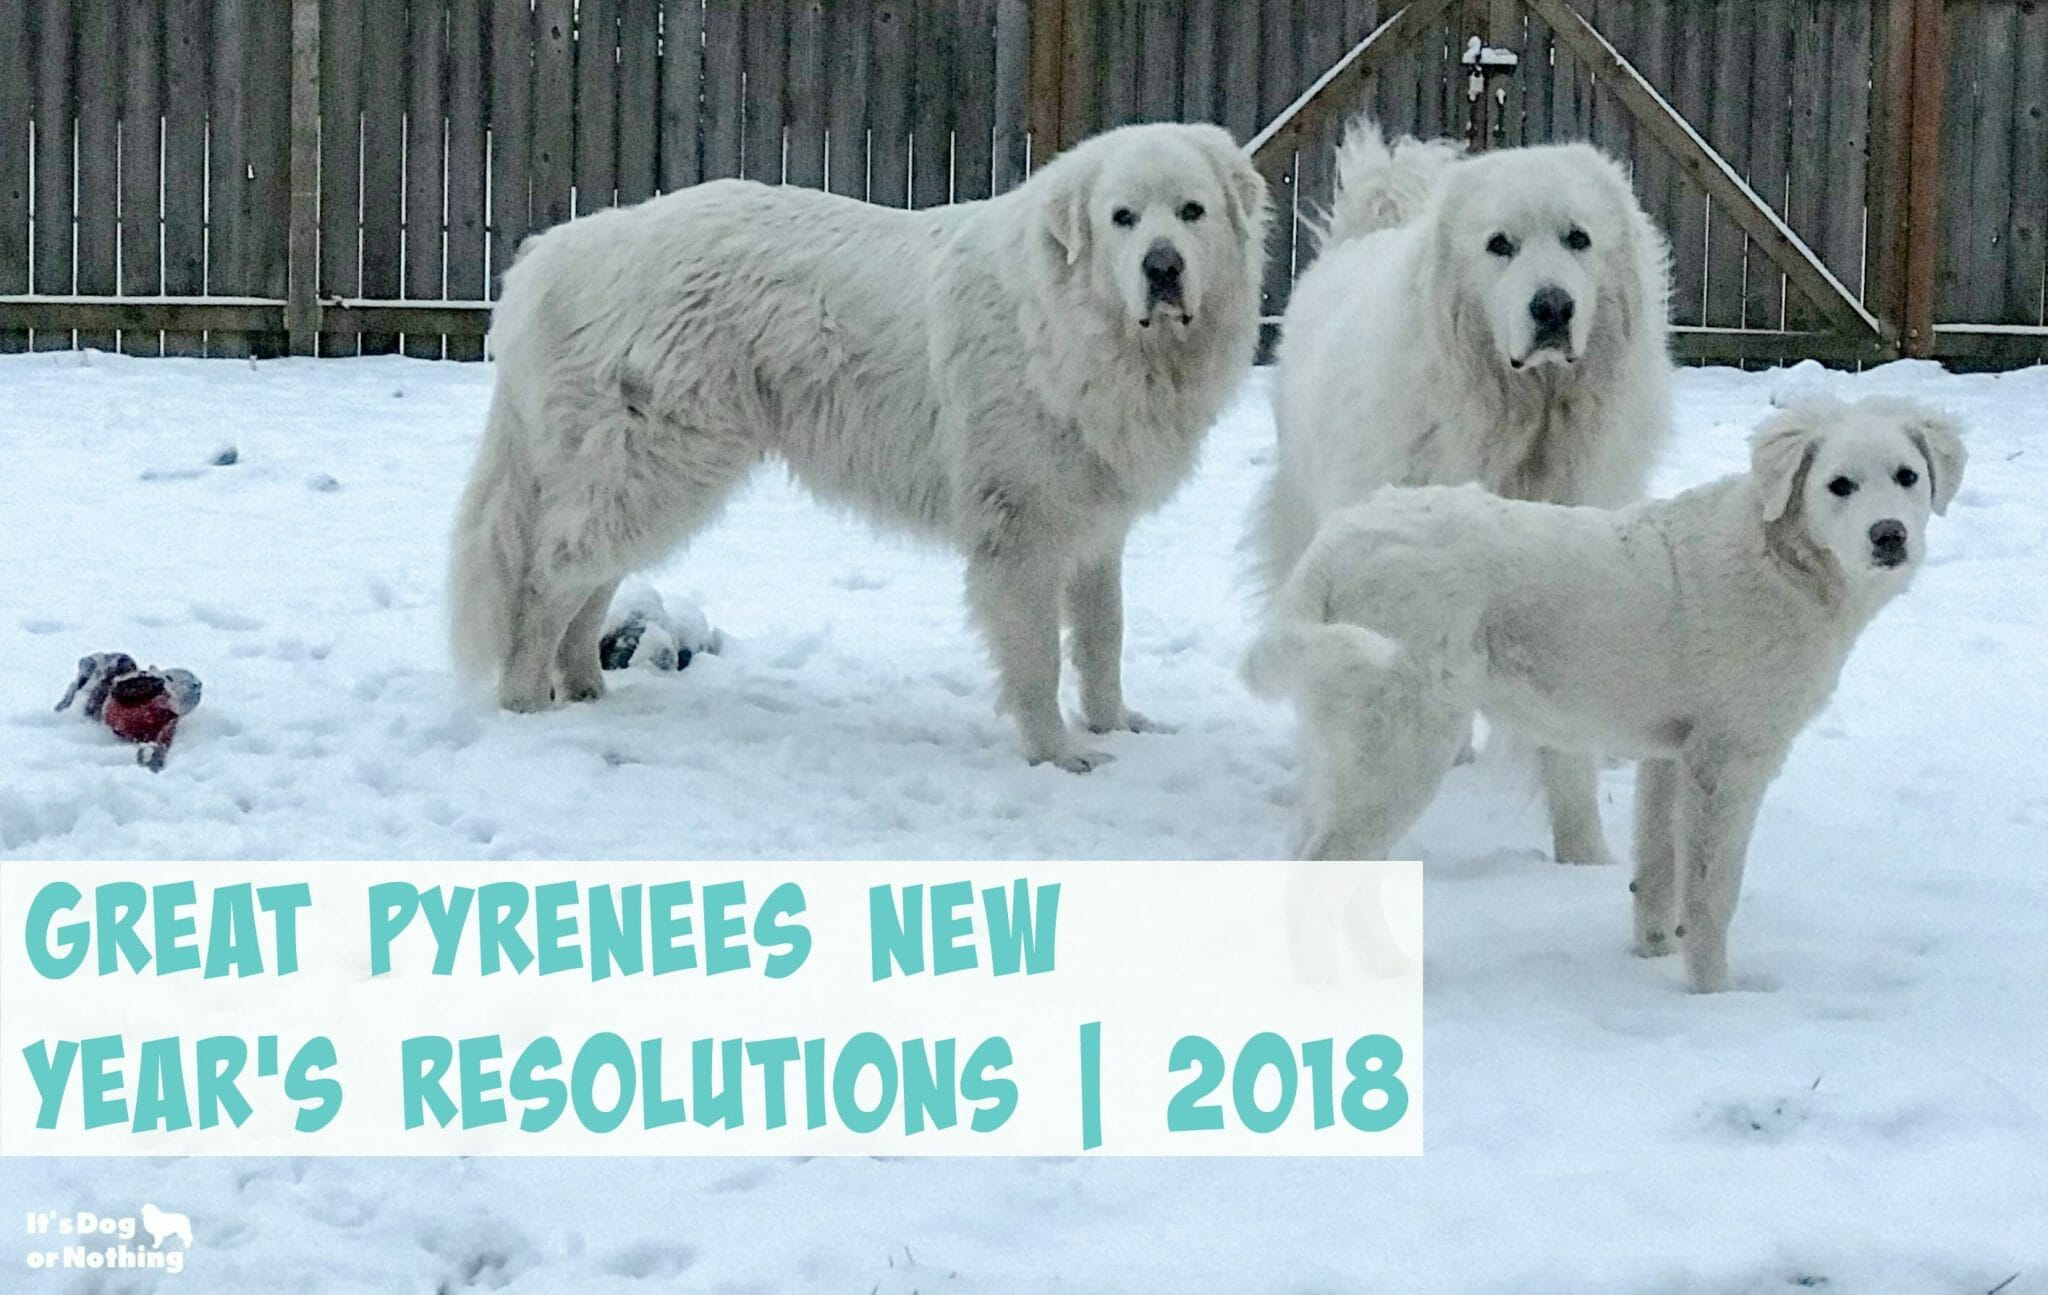 Great Pyrenees New Year's Resolutions 2018